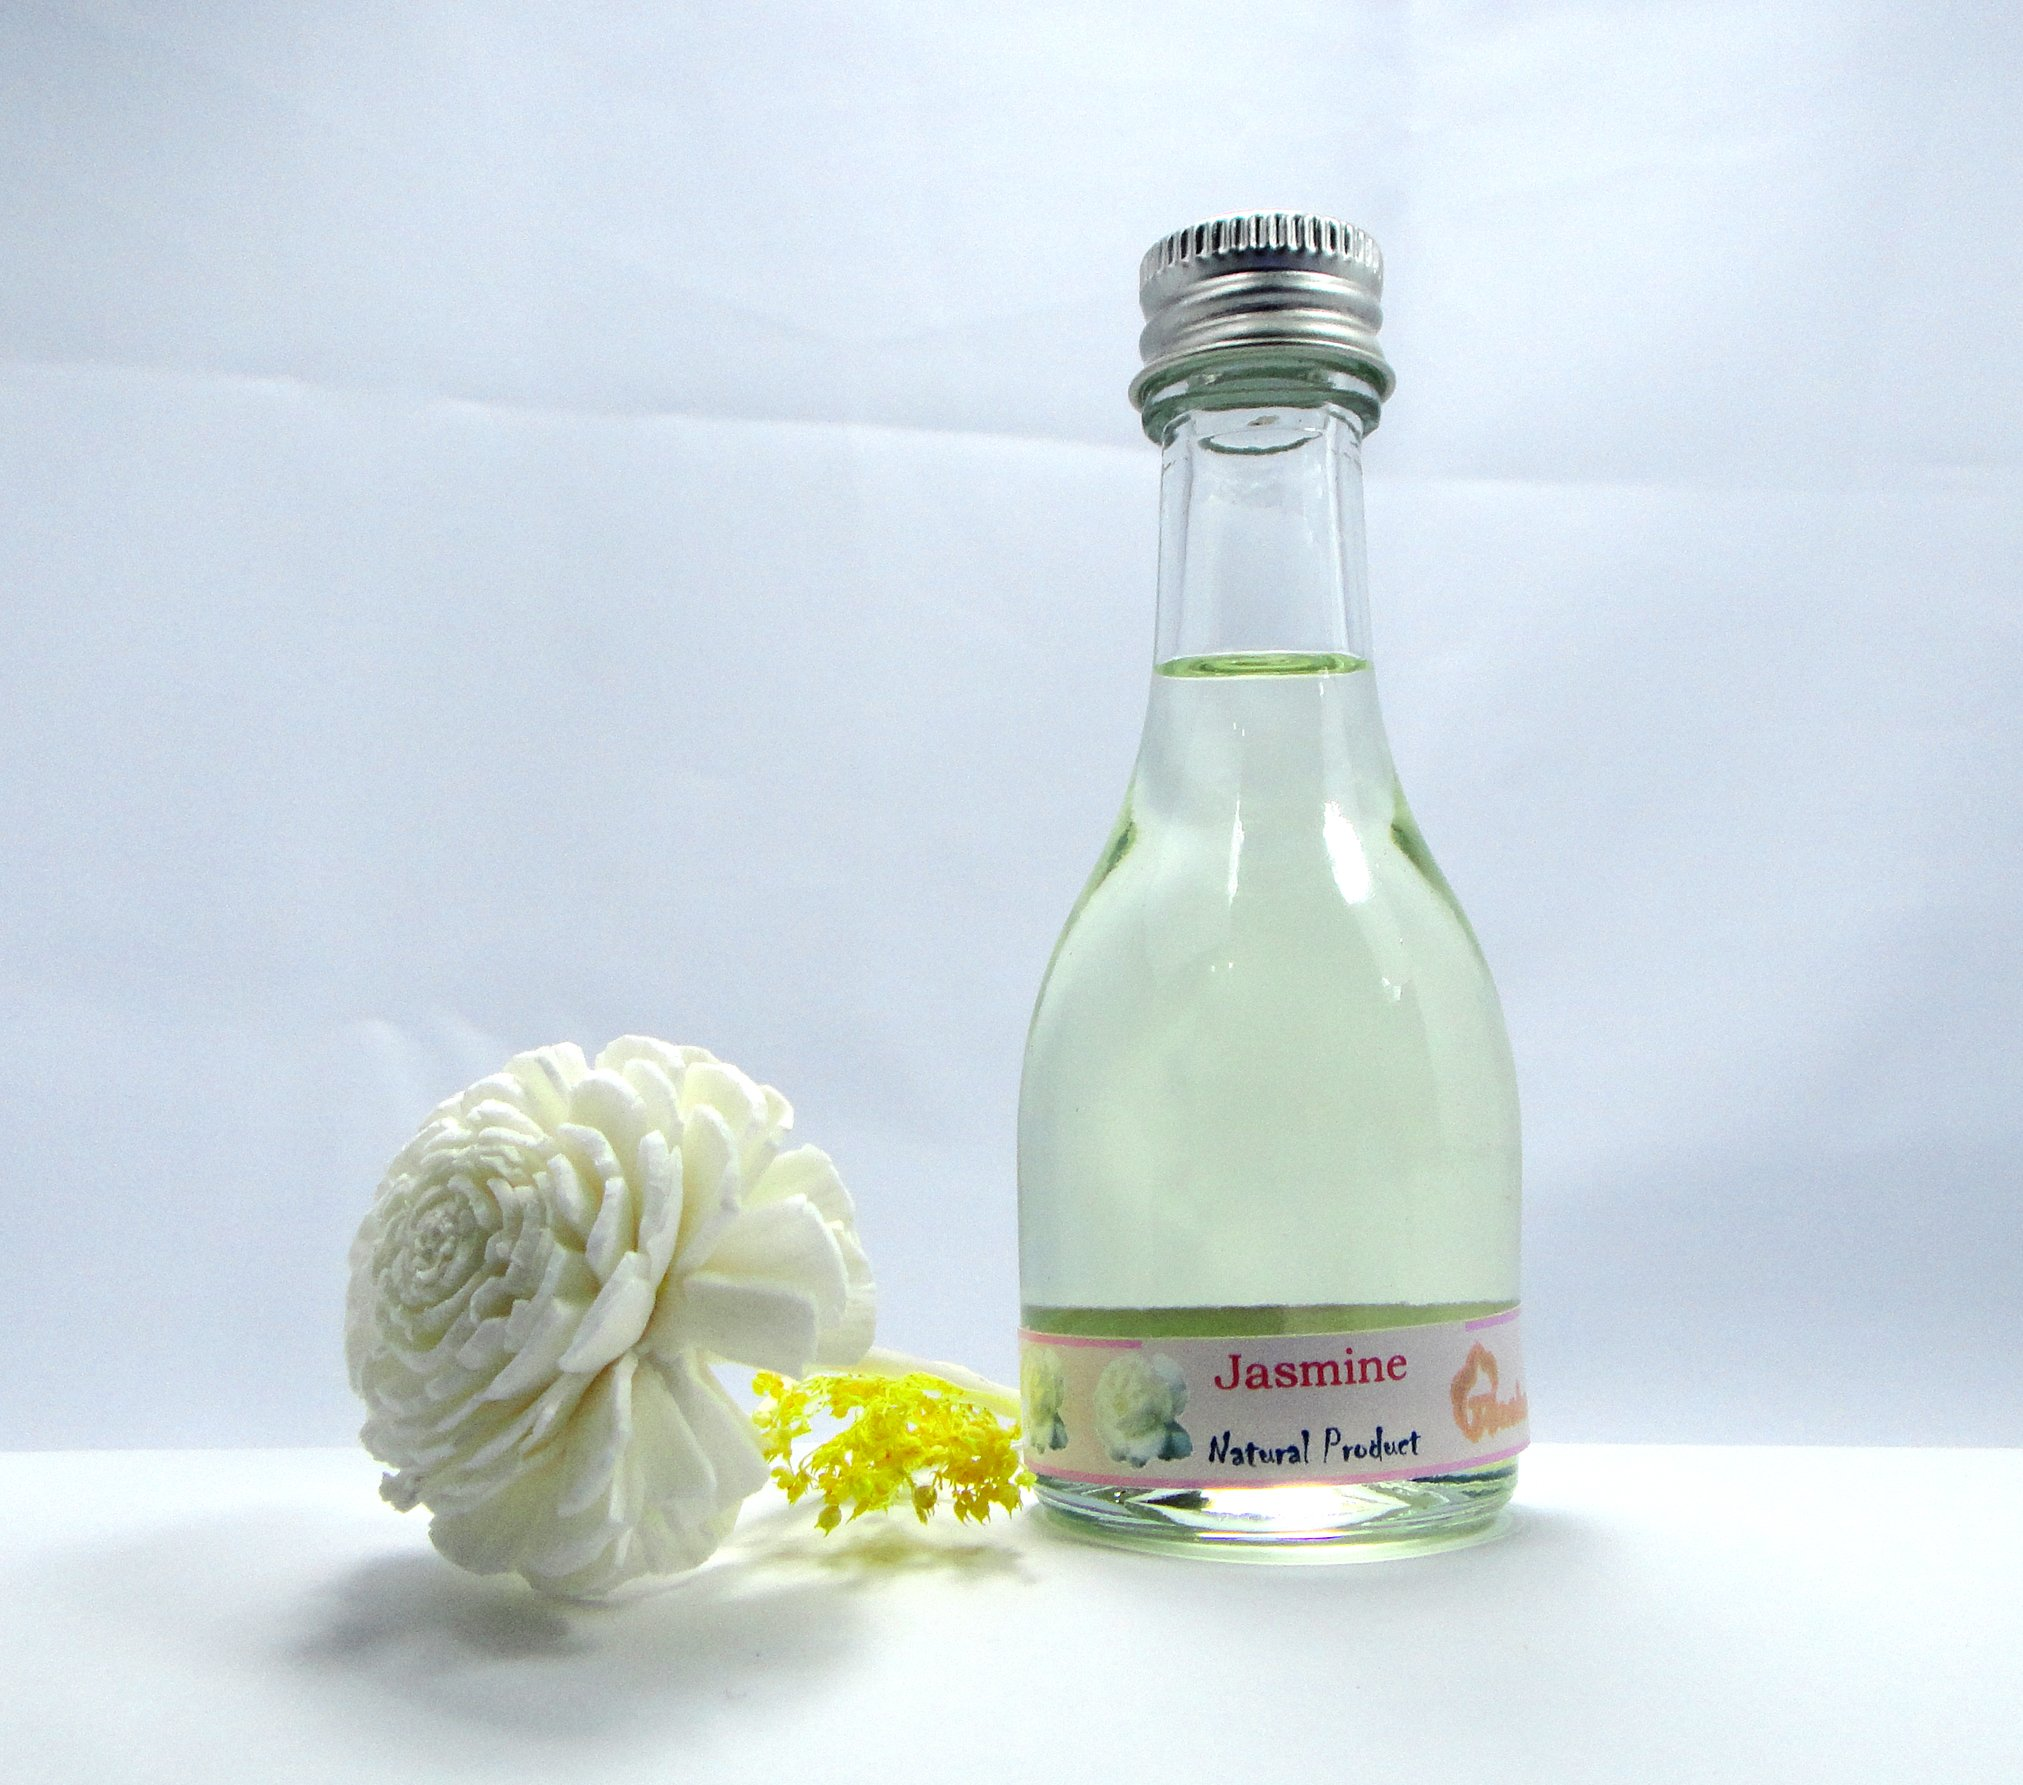 JASMINE Reed Diffuser Fragrance Essential Oil Reed Diffuser Jasmine Blossom 30 Ml./1 Oz. by Thailand by Thailand